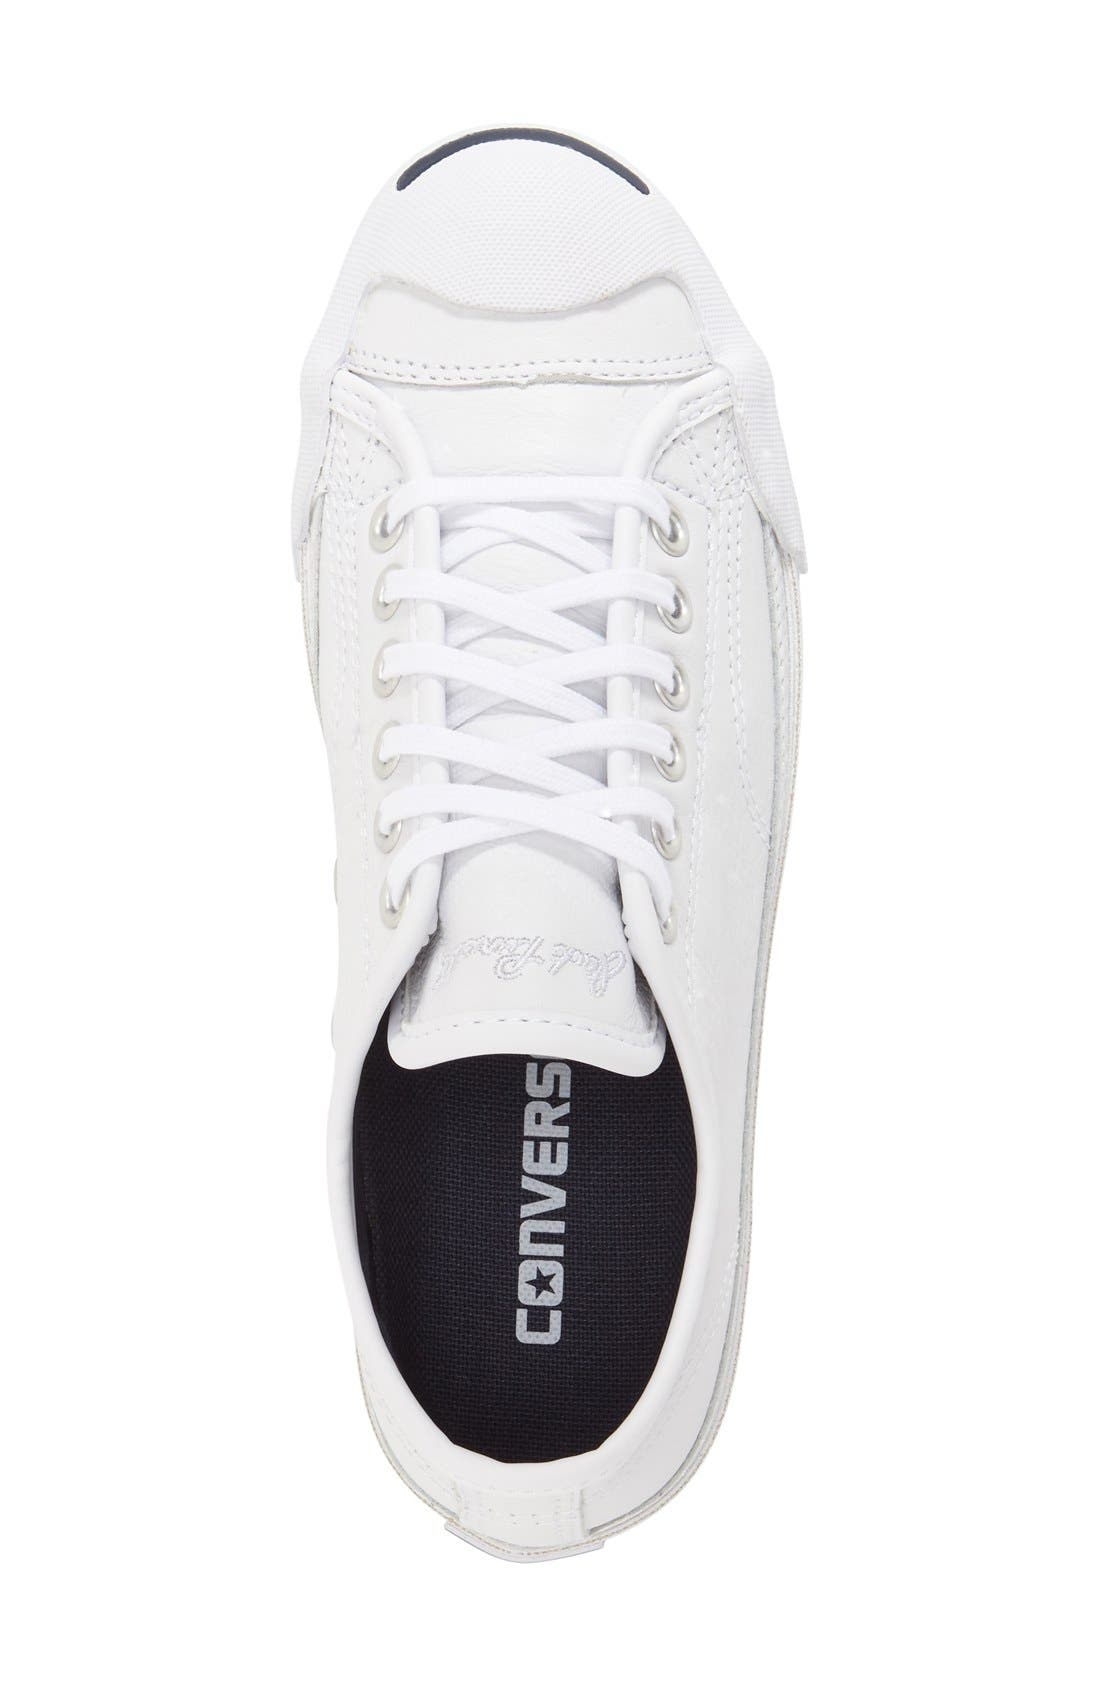 'Jack Purcell' Low Top Sneaker,                             Alternate thumbnail 3, color,                             100